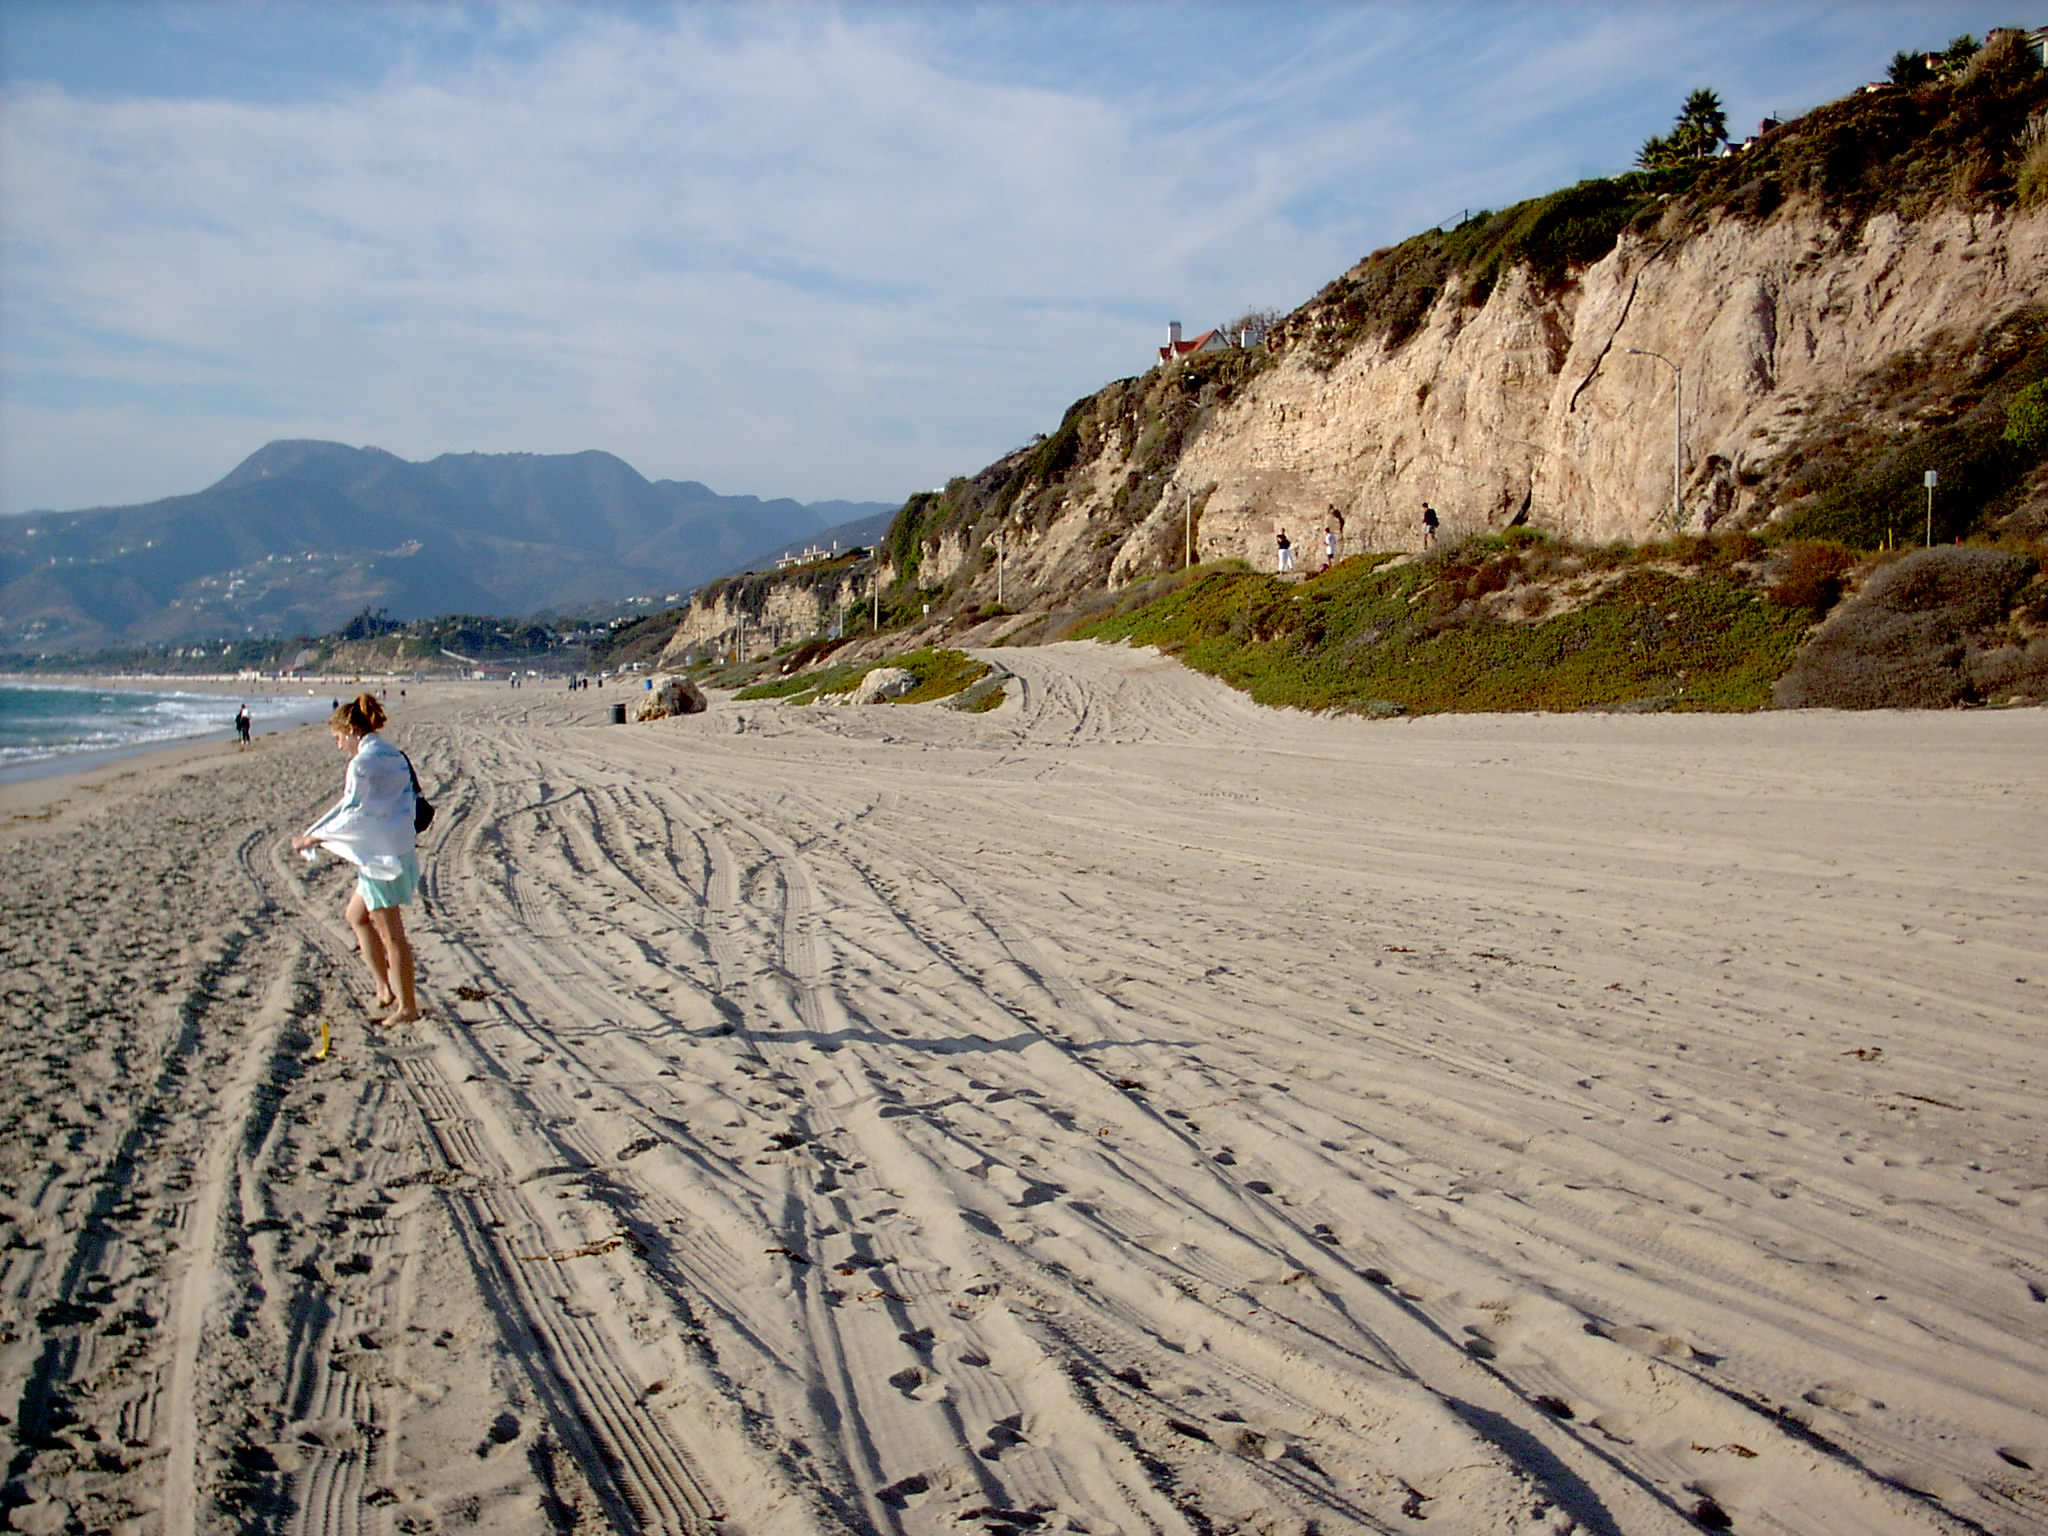 Zuma Beach - Iconic and stunning beach to get away from crowded LA beaches.